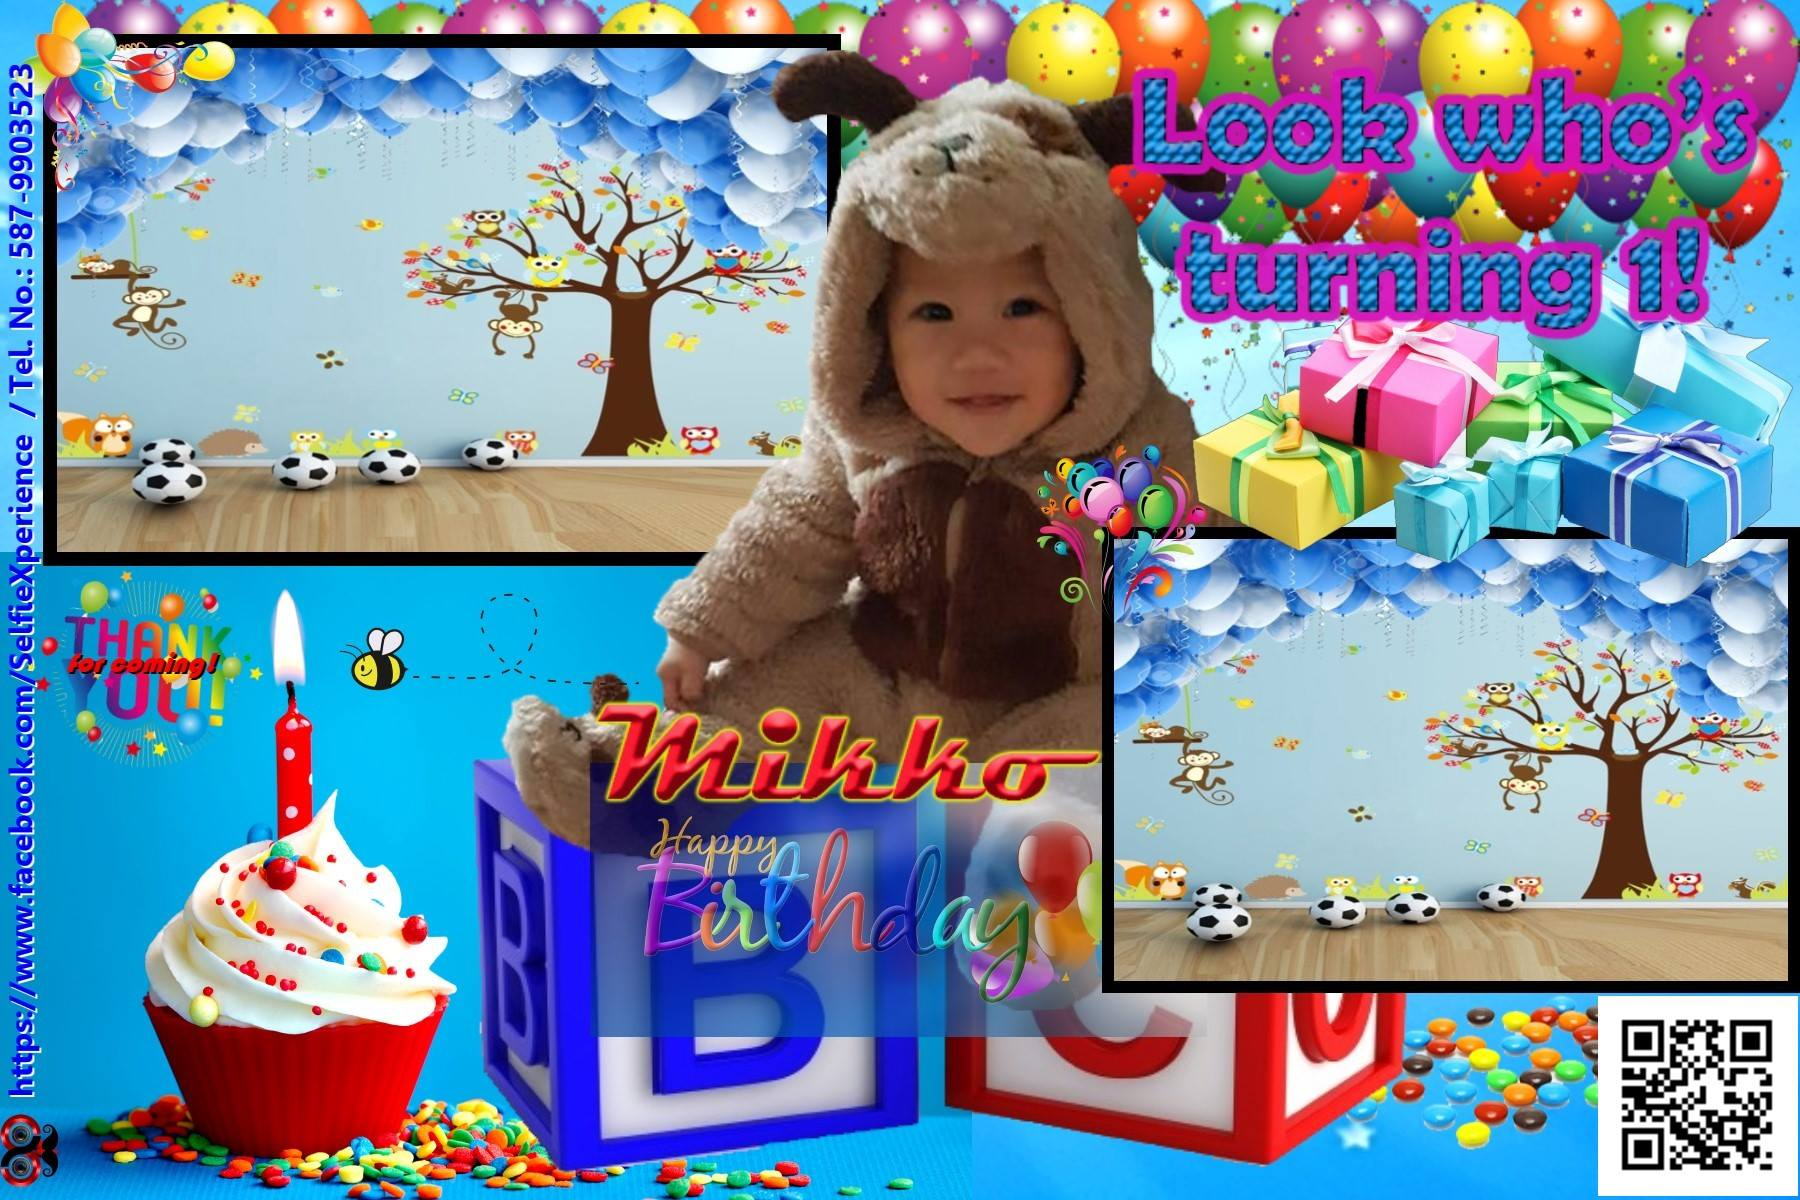 Mikko's Birthday